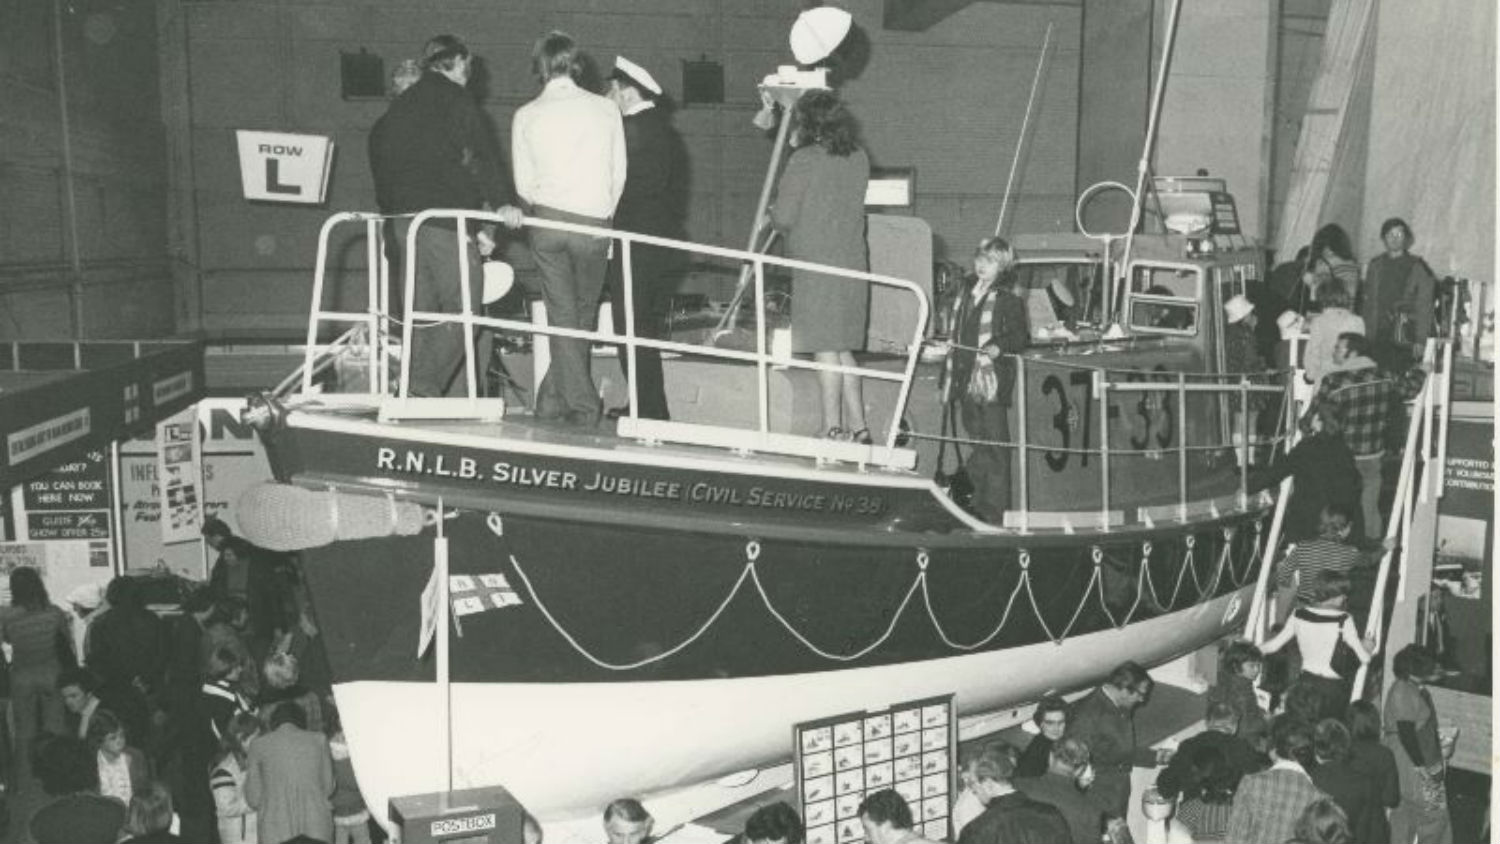 Black and white image of visitors to Boat Show viewing lifeboat